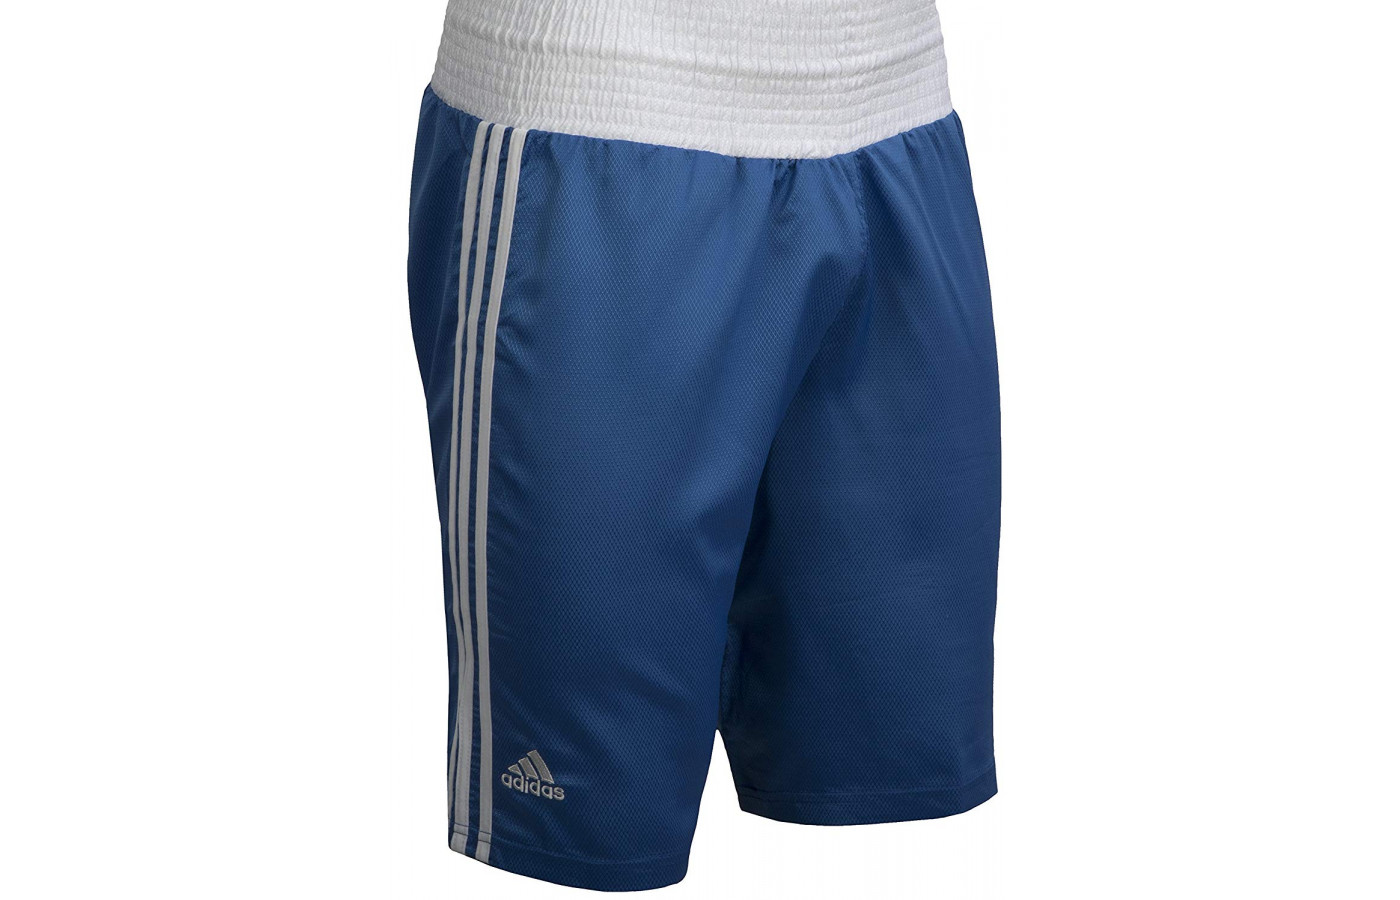 adidas boxing trunks dark blue and white